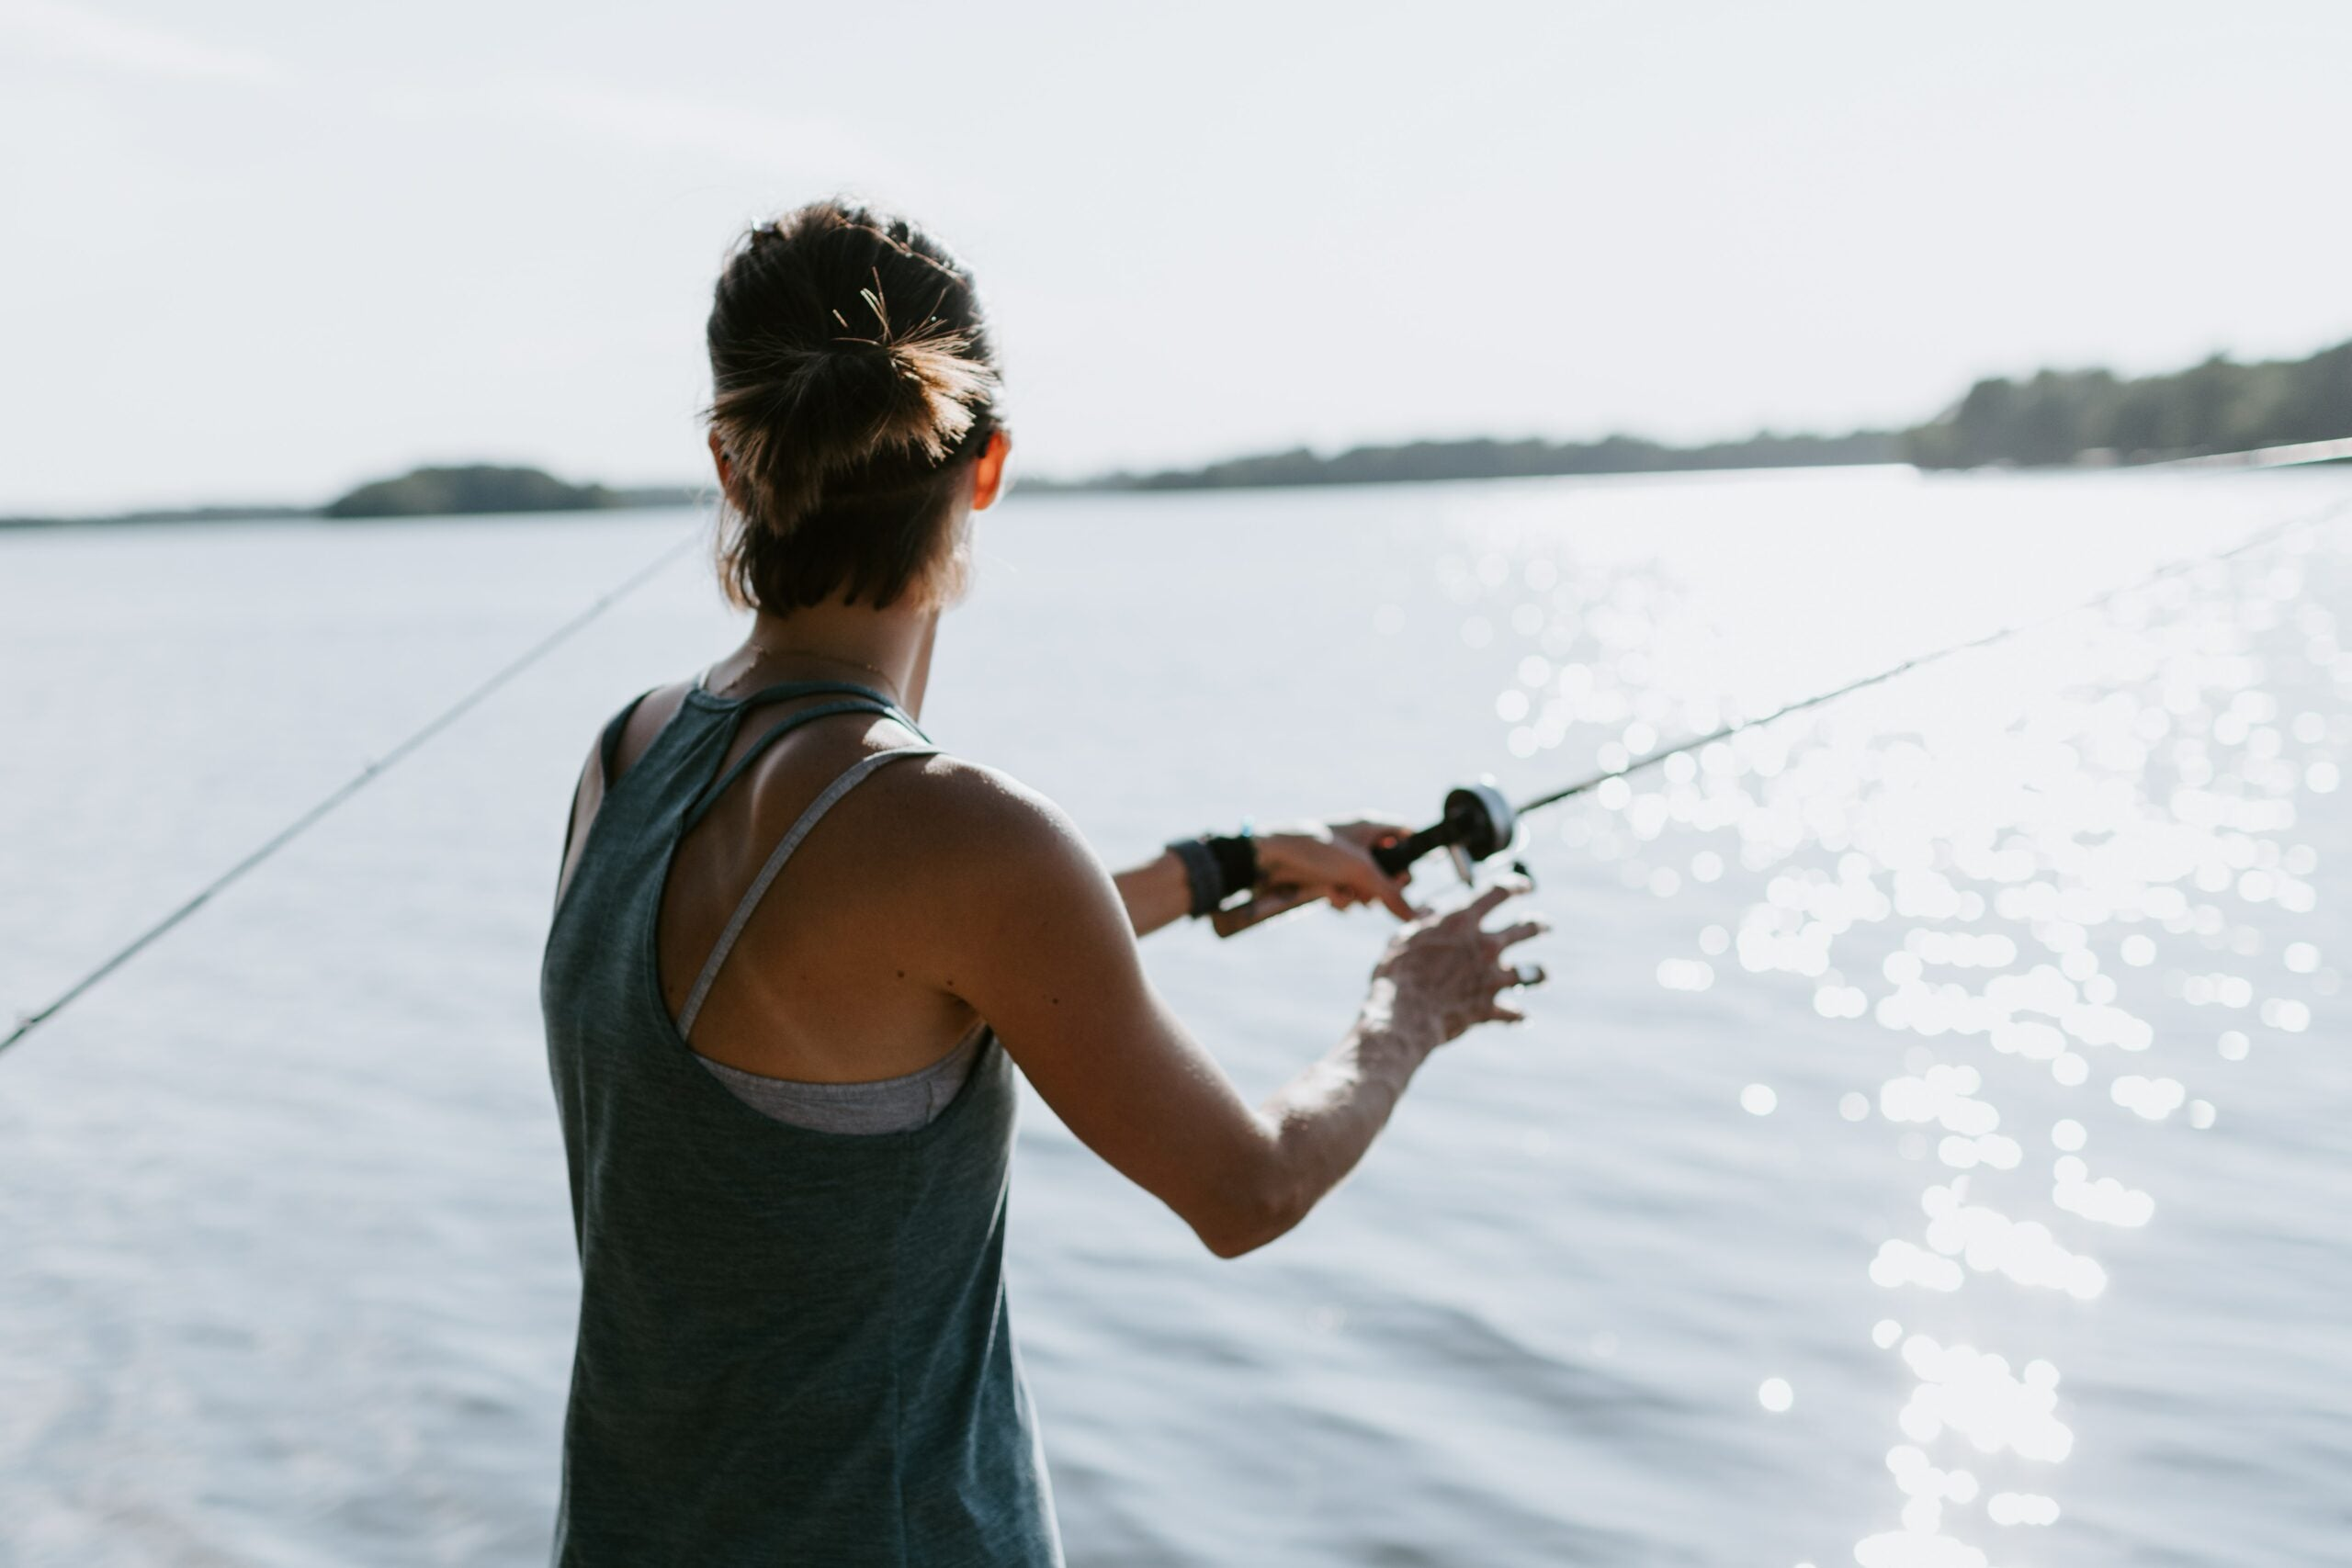 fishing gifts for moms. woman fishing on a lake.